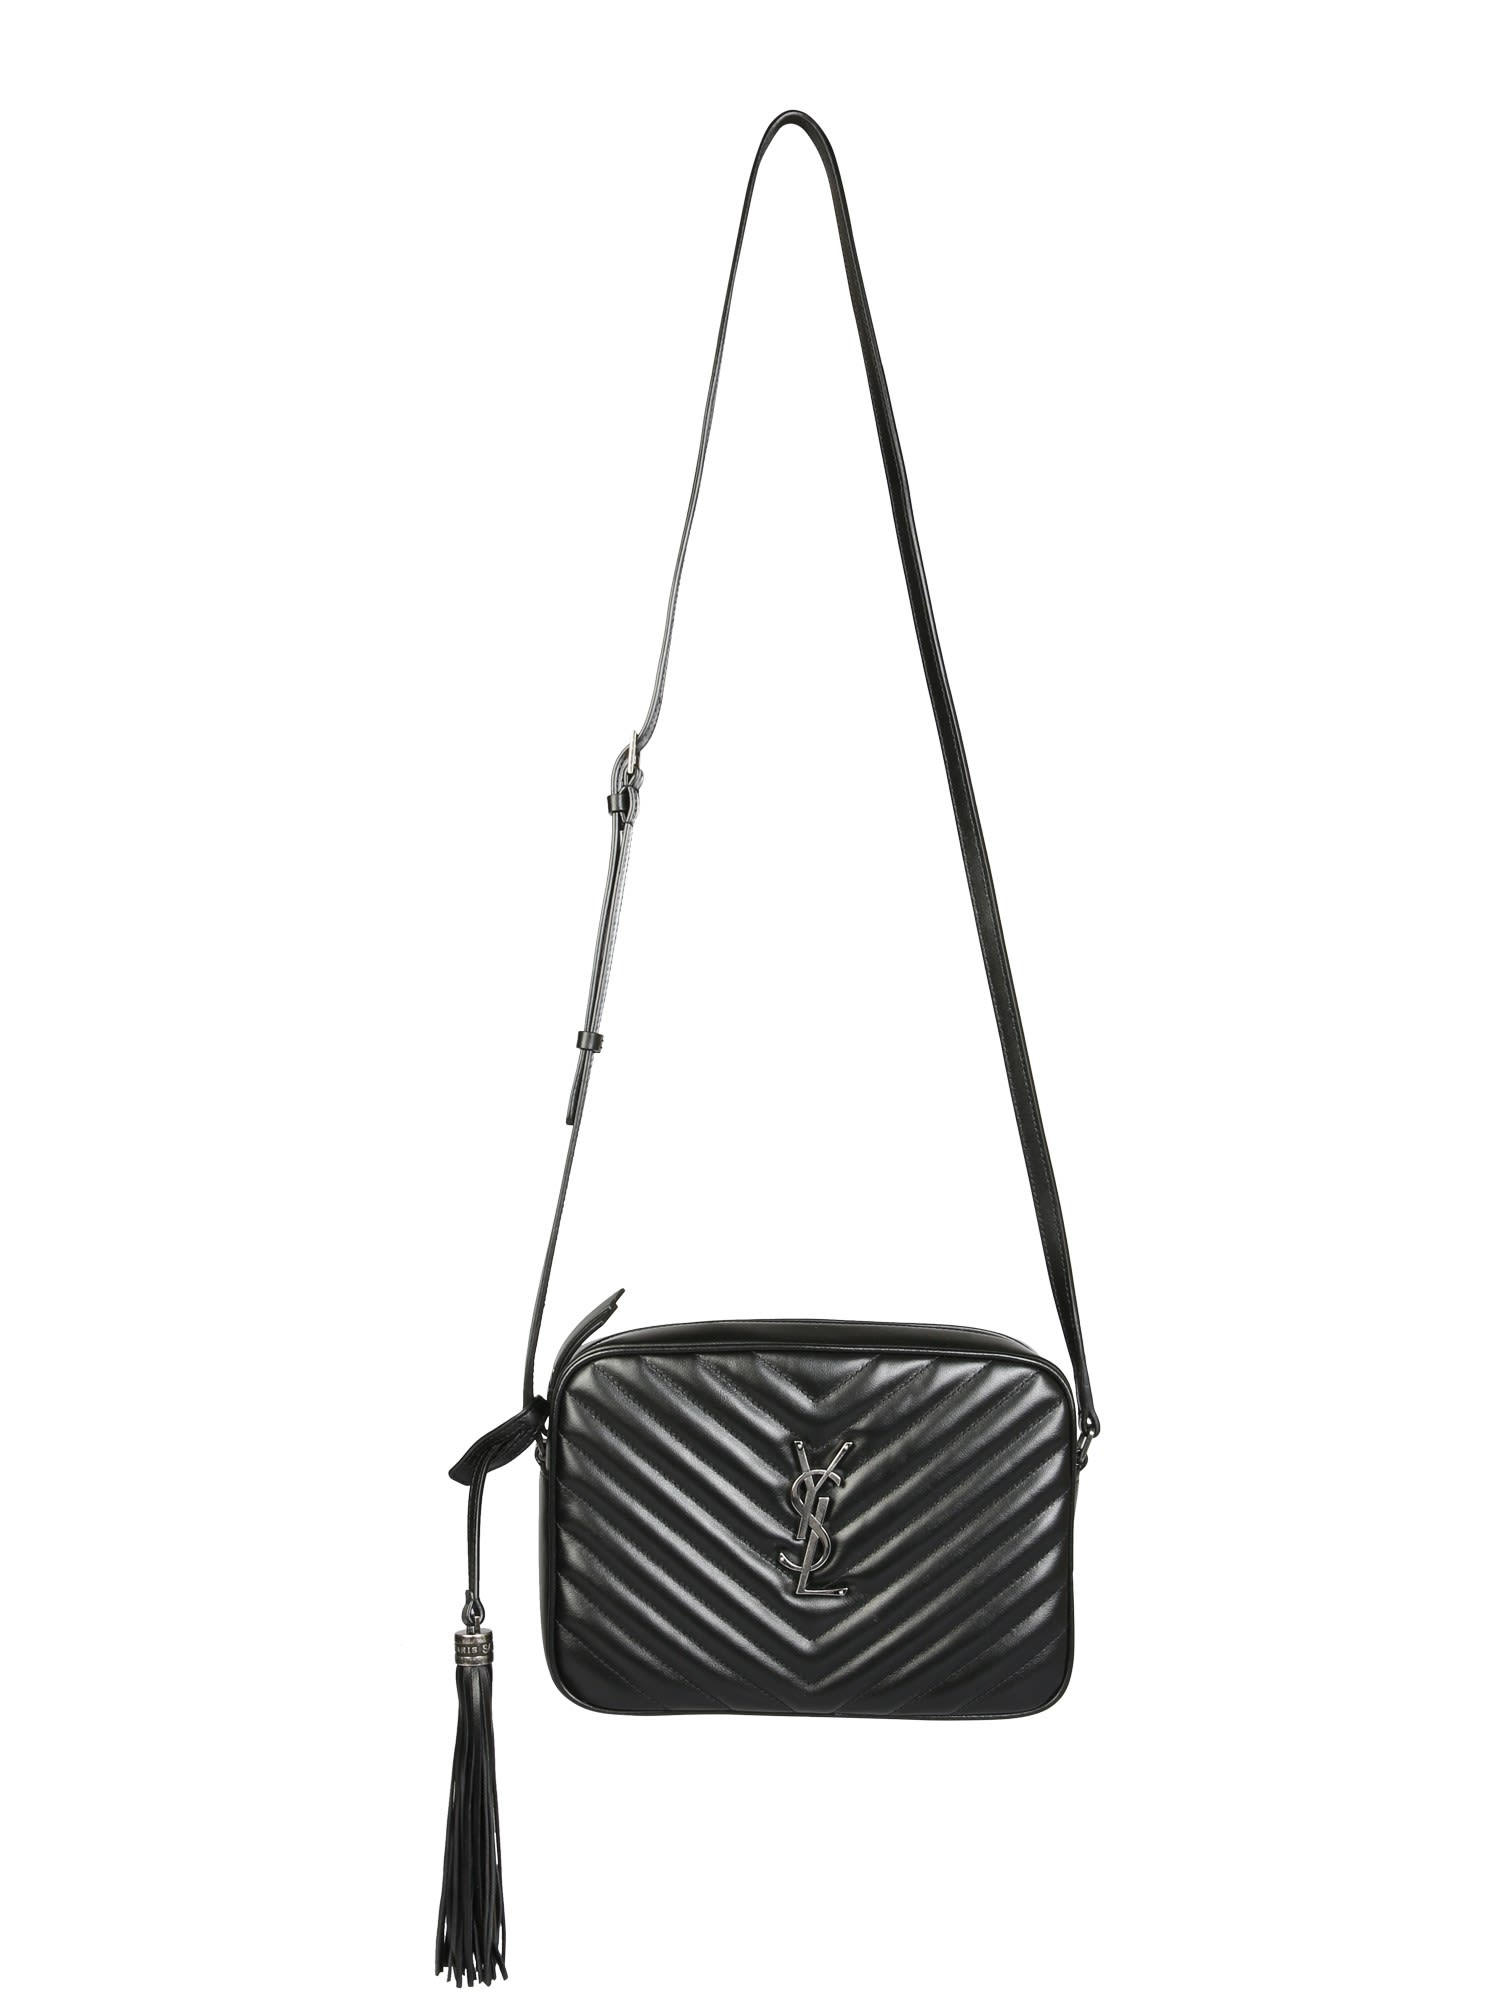 SAINT LAURENT LOU SHOULDER BAG